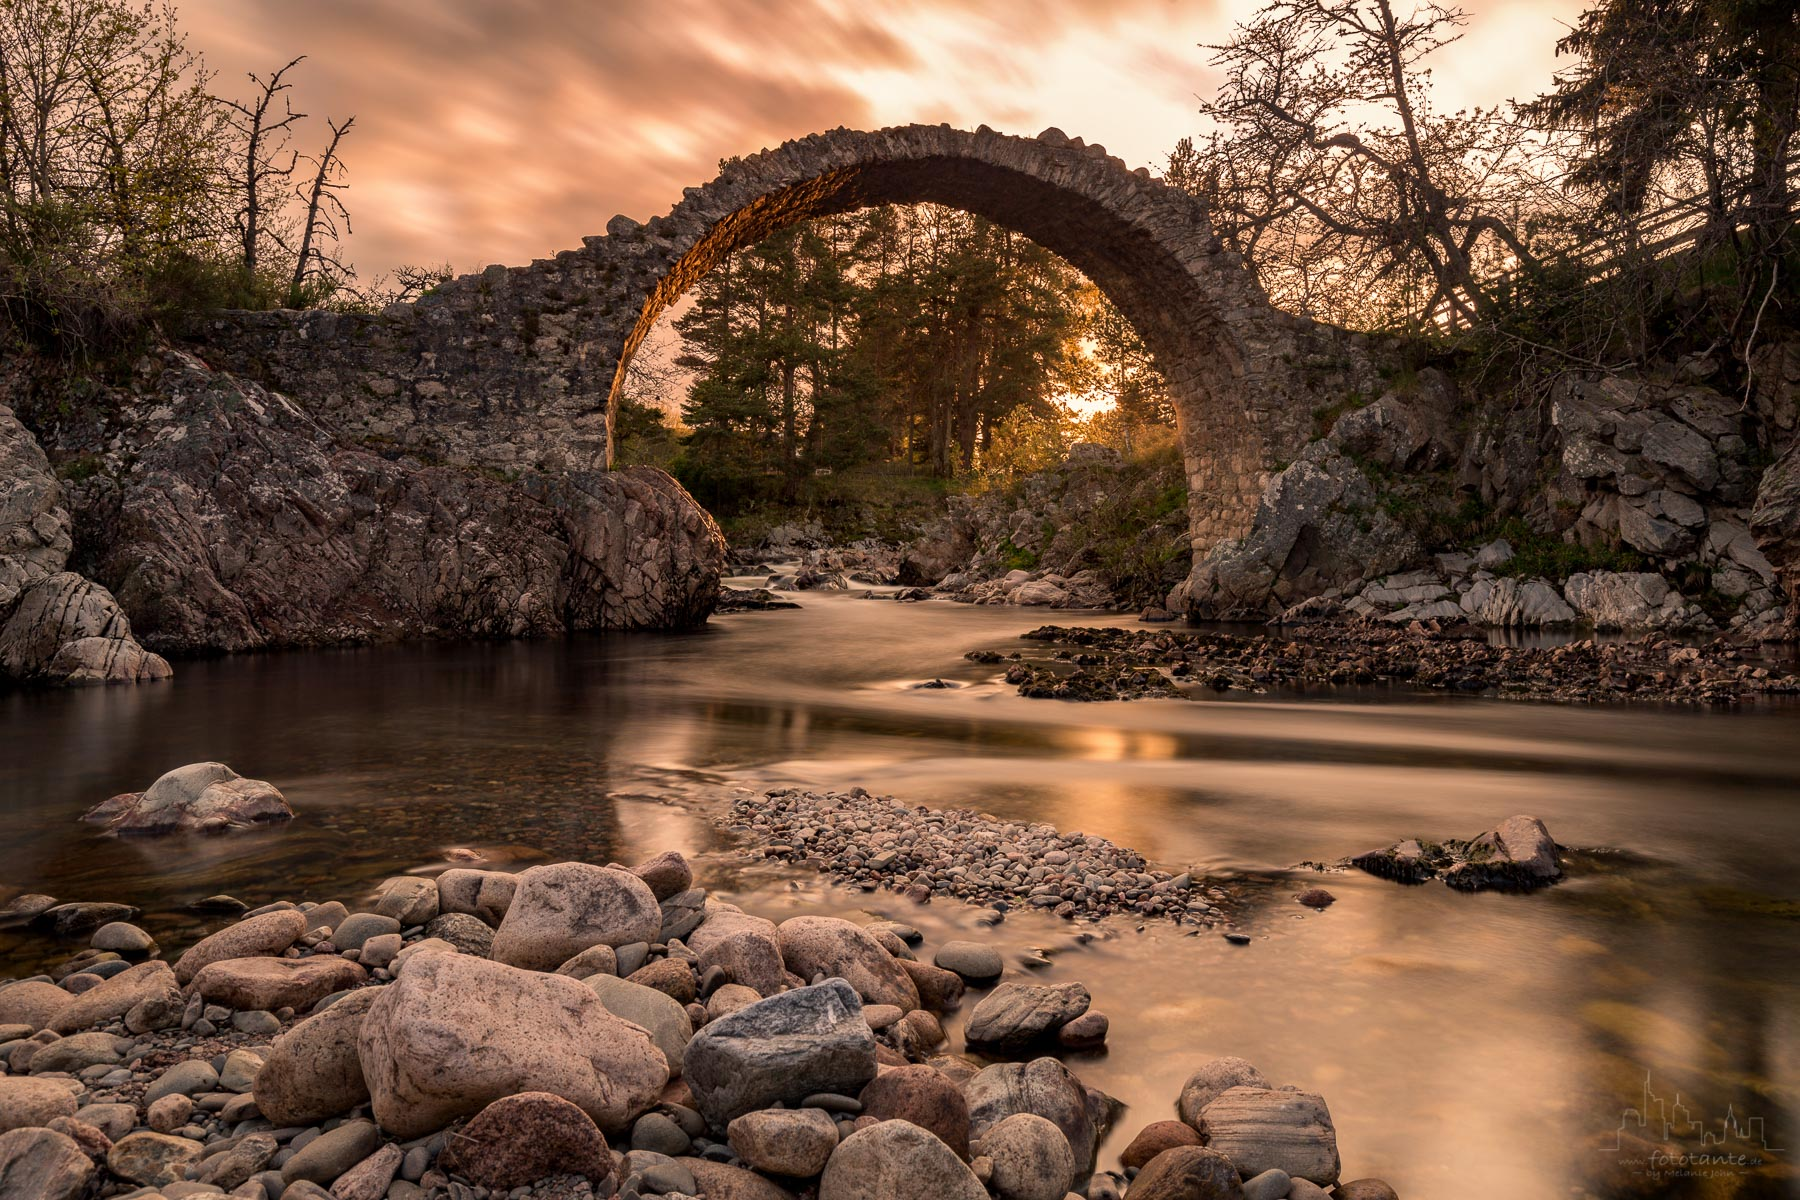 Carrbridge bridge, United Kingdom